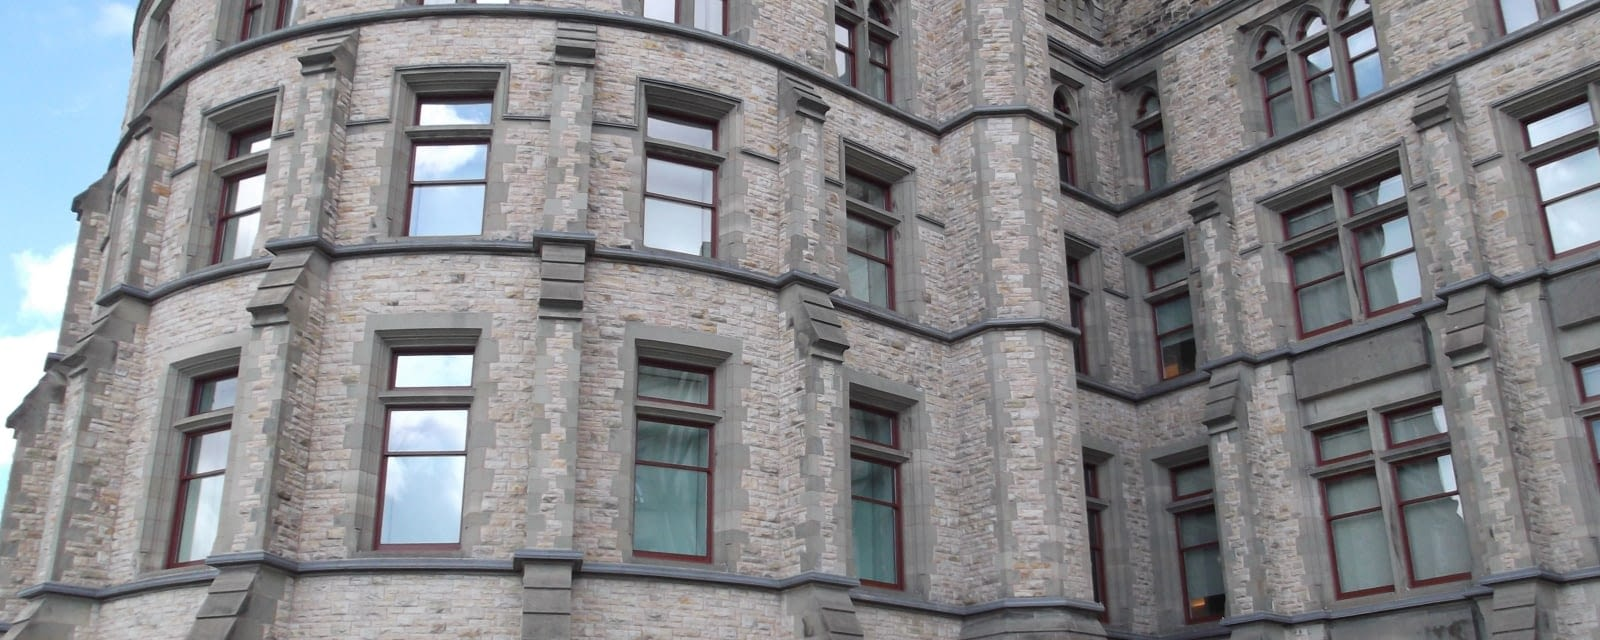 Exterior window restoration at the Canadian Museum of Nature in Ottawa, Ontario